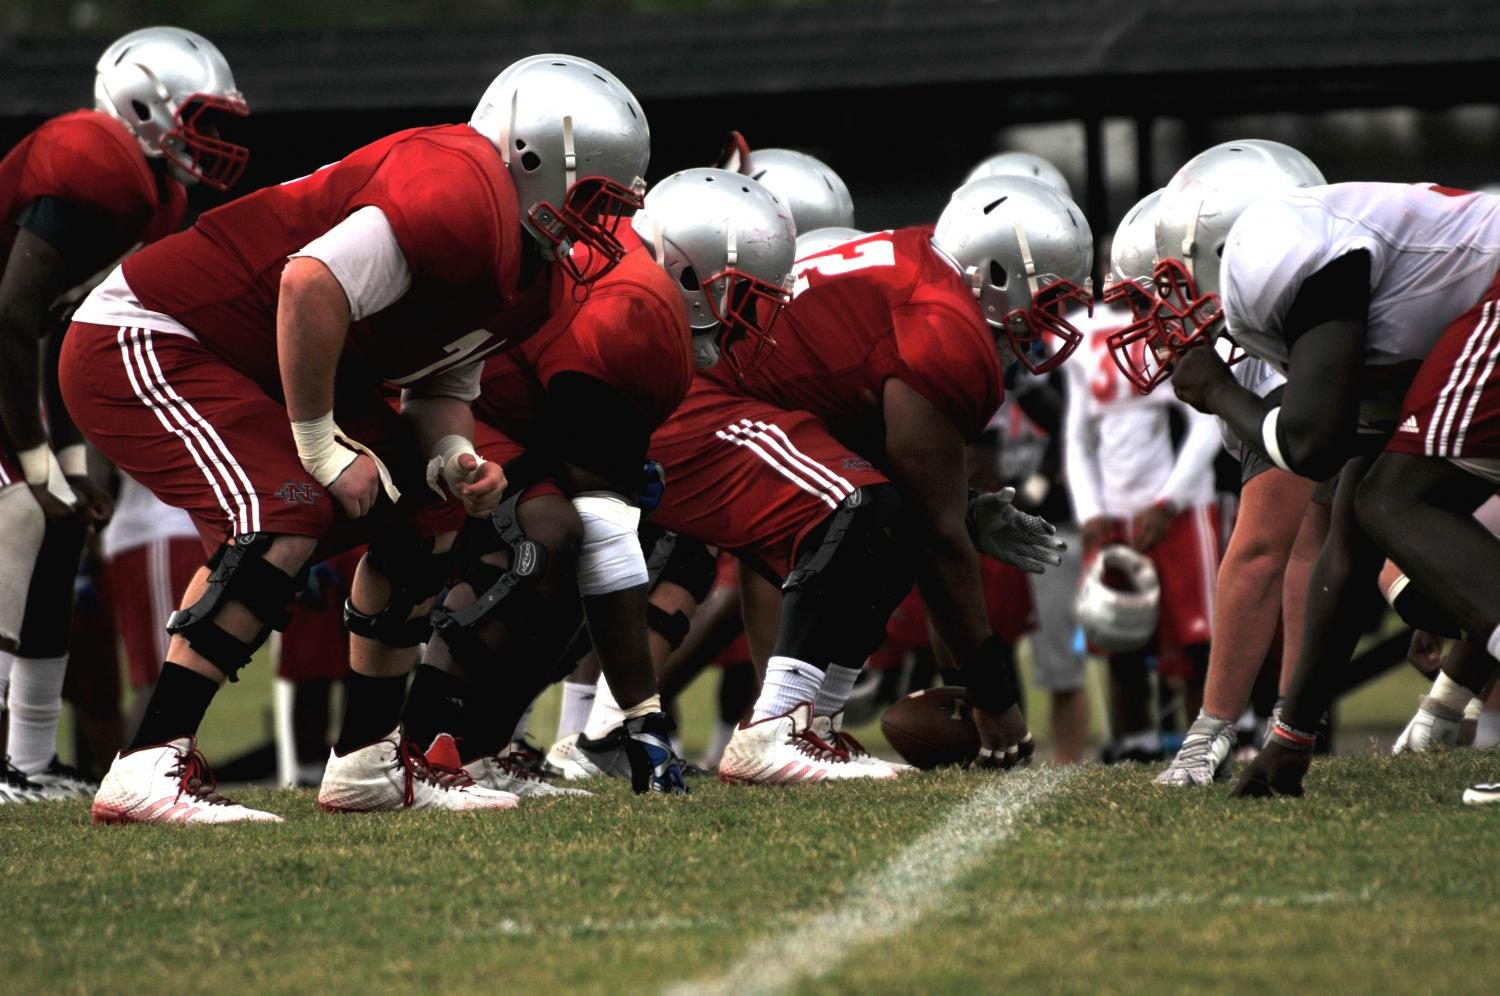 Offensive+and+defensive+linemen+get+into+formation+on+the+line+of+scrimmage+at+afternoon+practice+on+Tuesday%2C+September+1.